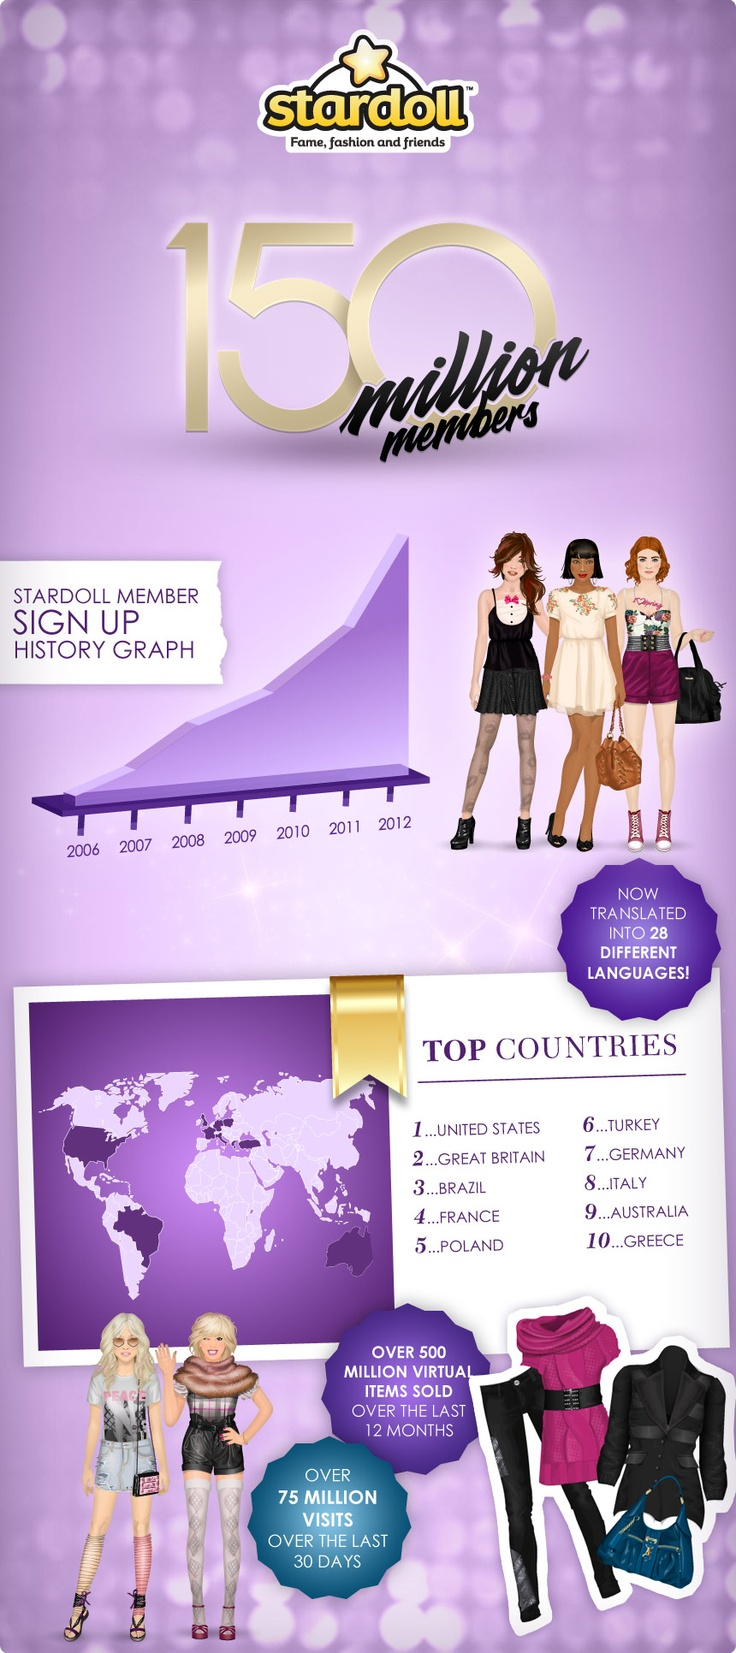 Stardoll 150 Million Members - the 150 millionth Stardoll was created end of Jan 2012 in Czech Republic...